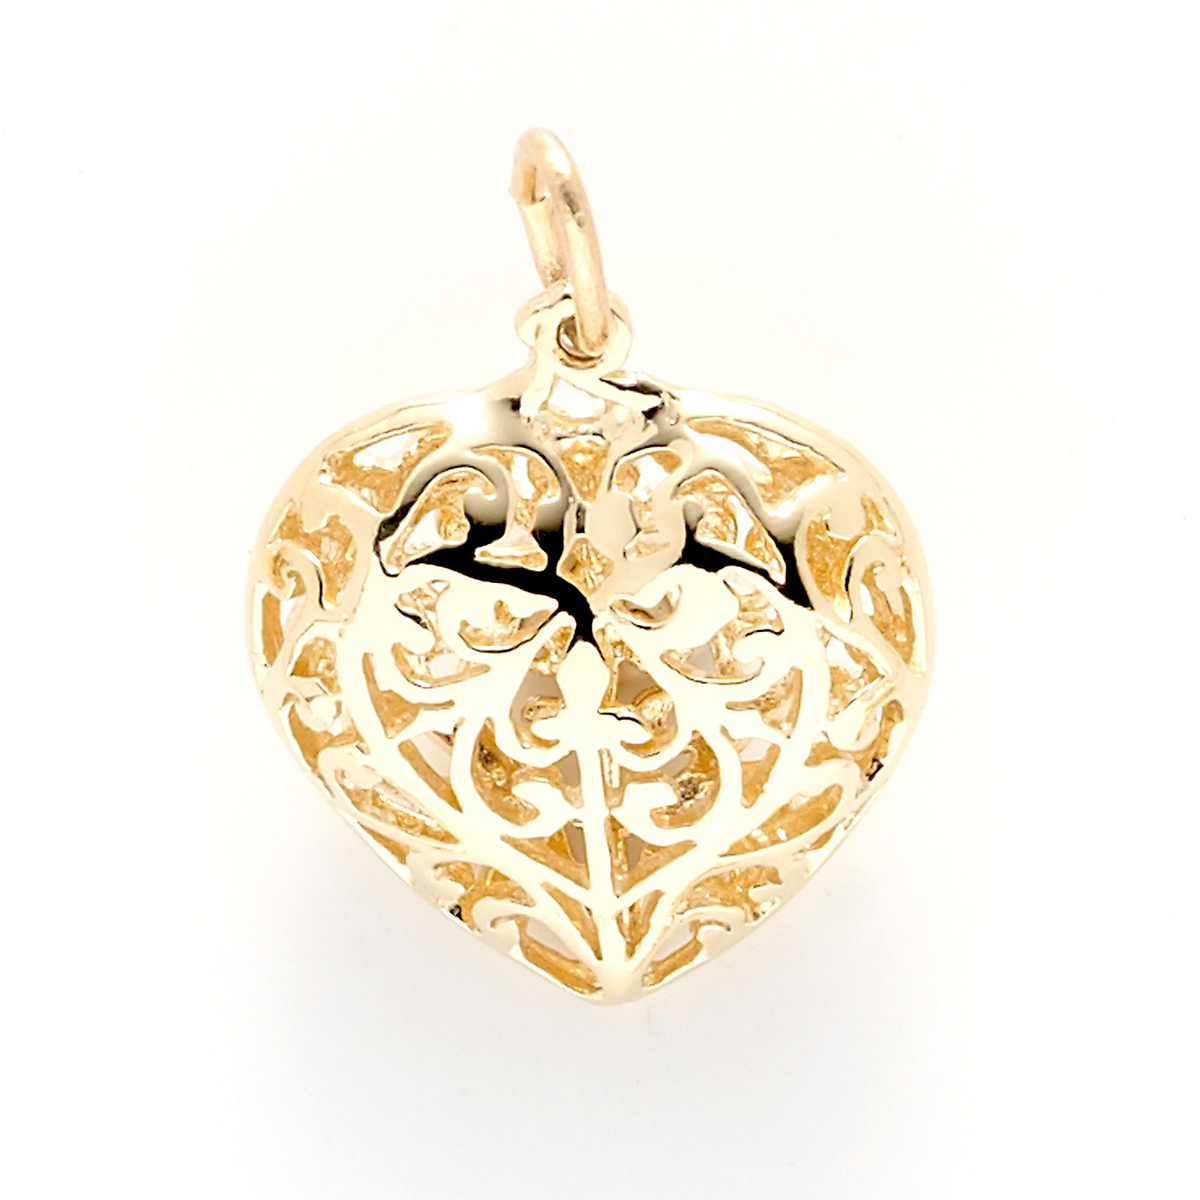 Gold Filigree Heart Charm